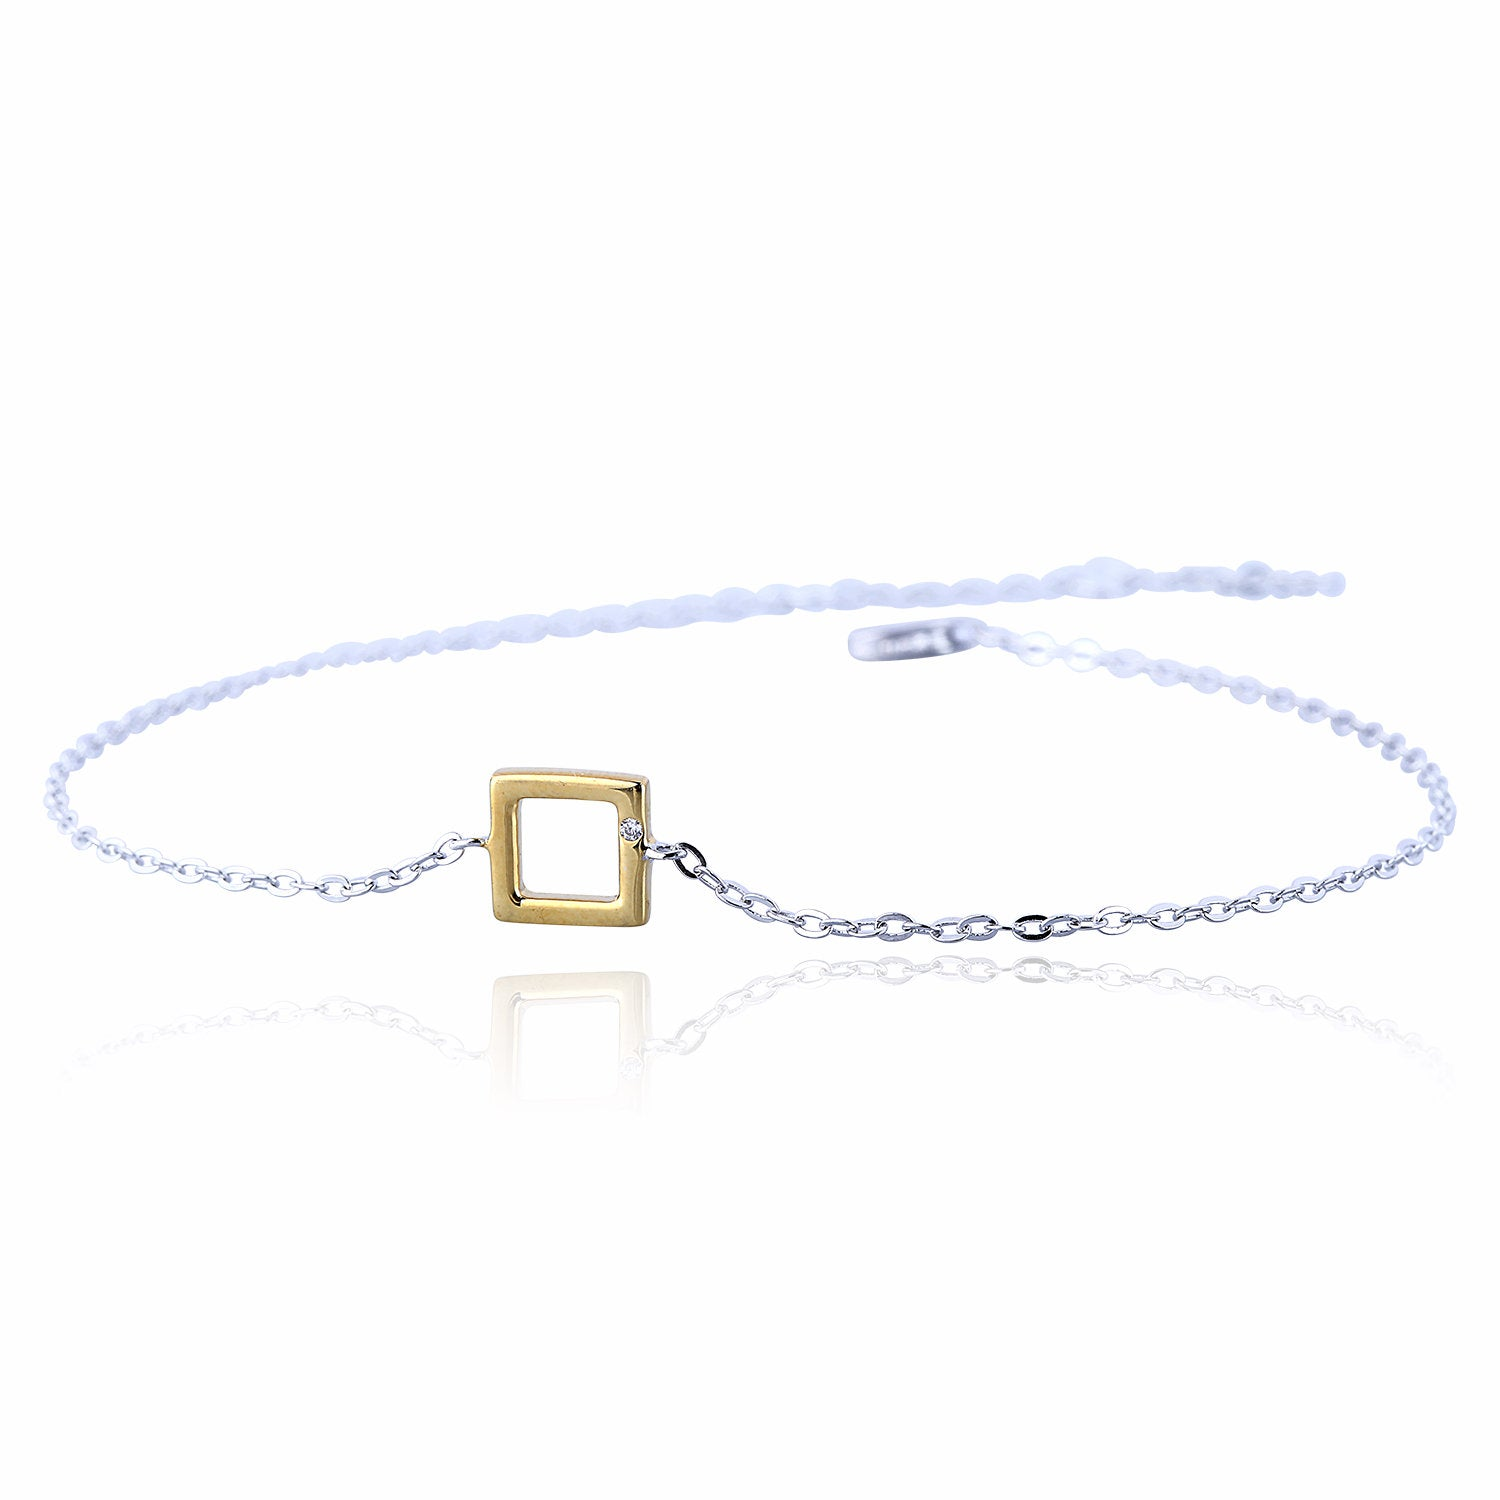 MINI GOLDEN SQUARE STERLING SILVER BRACELET